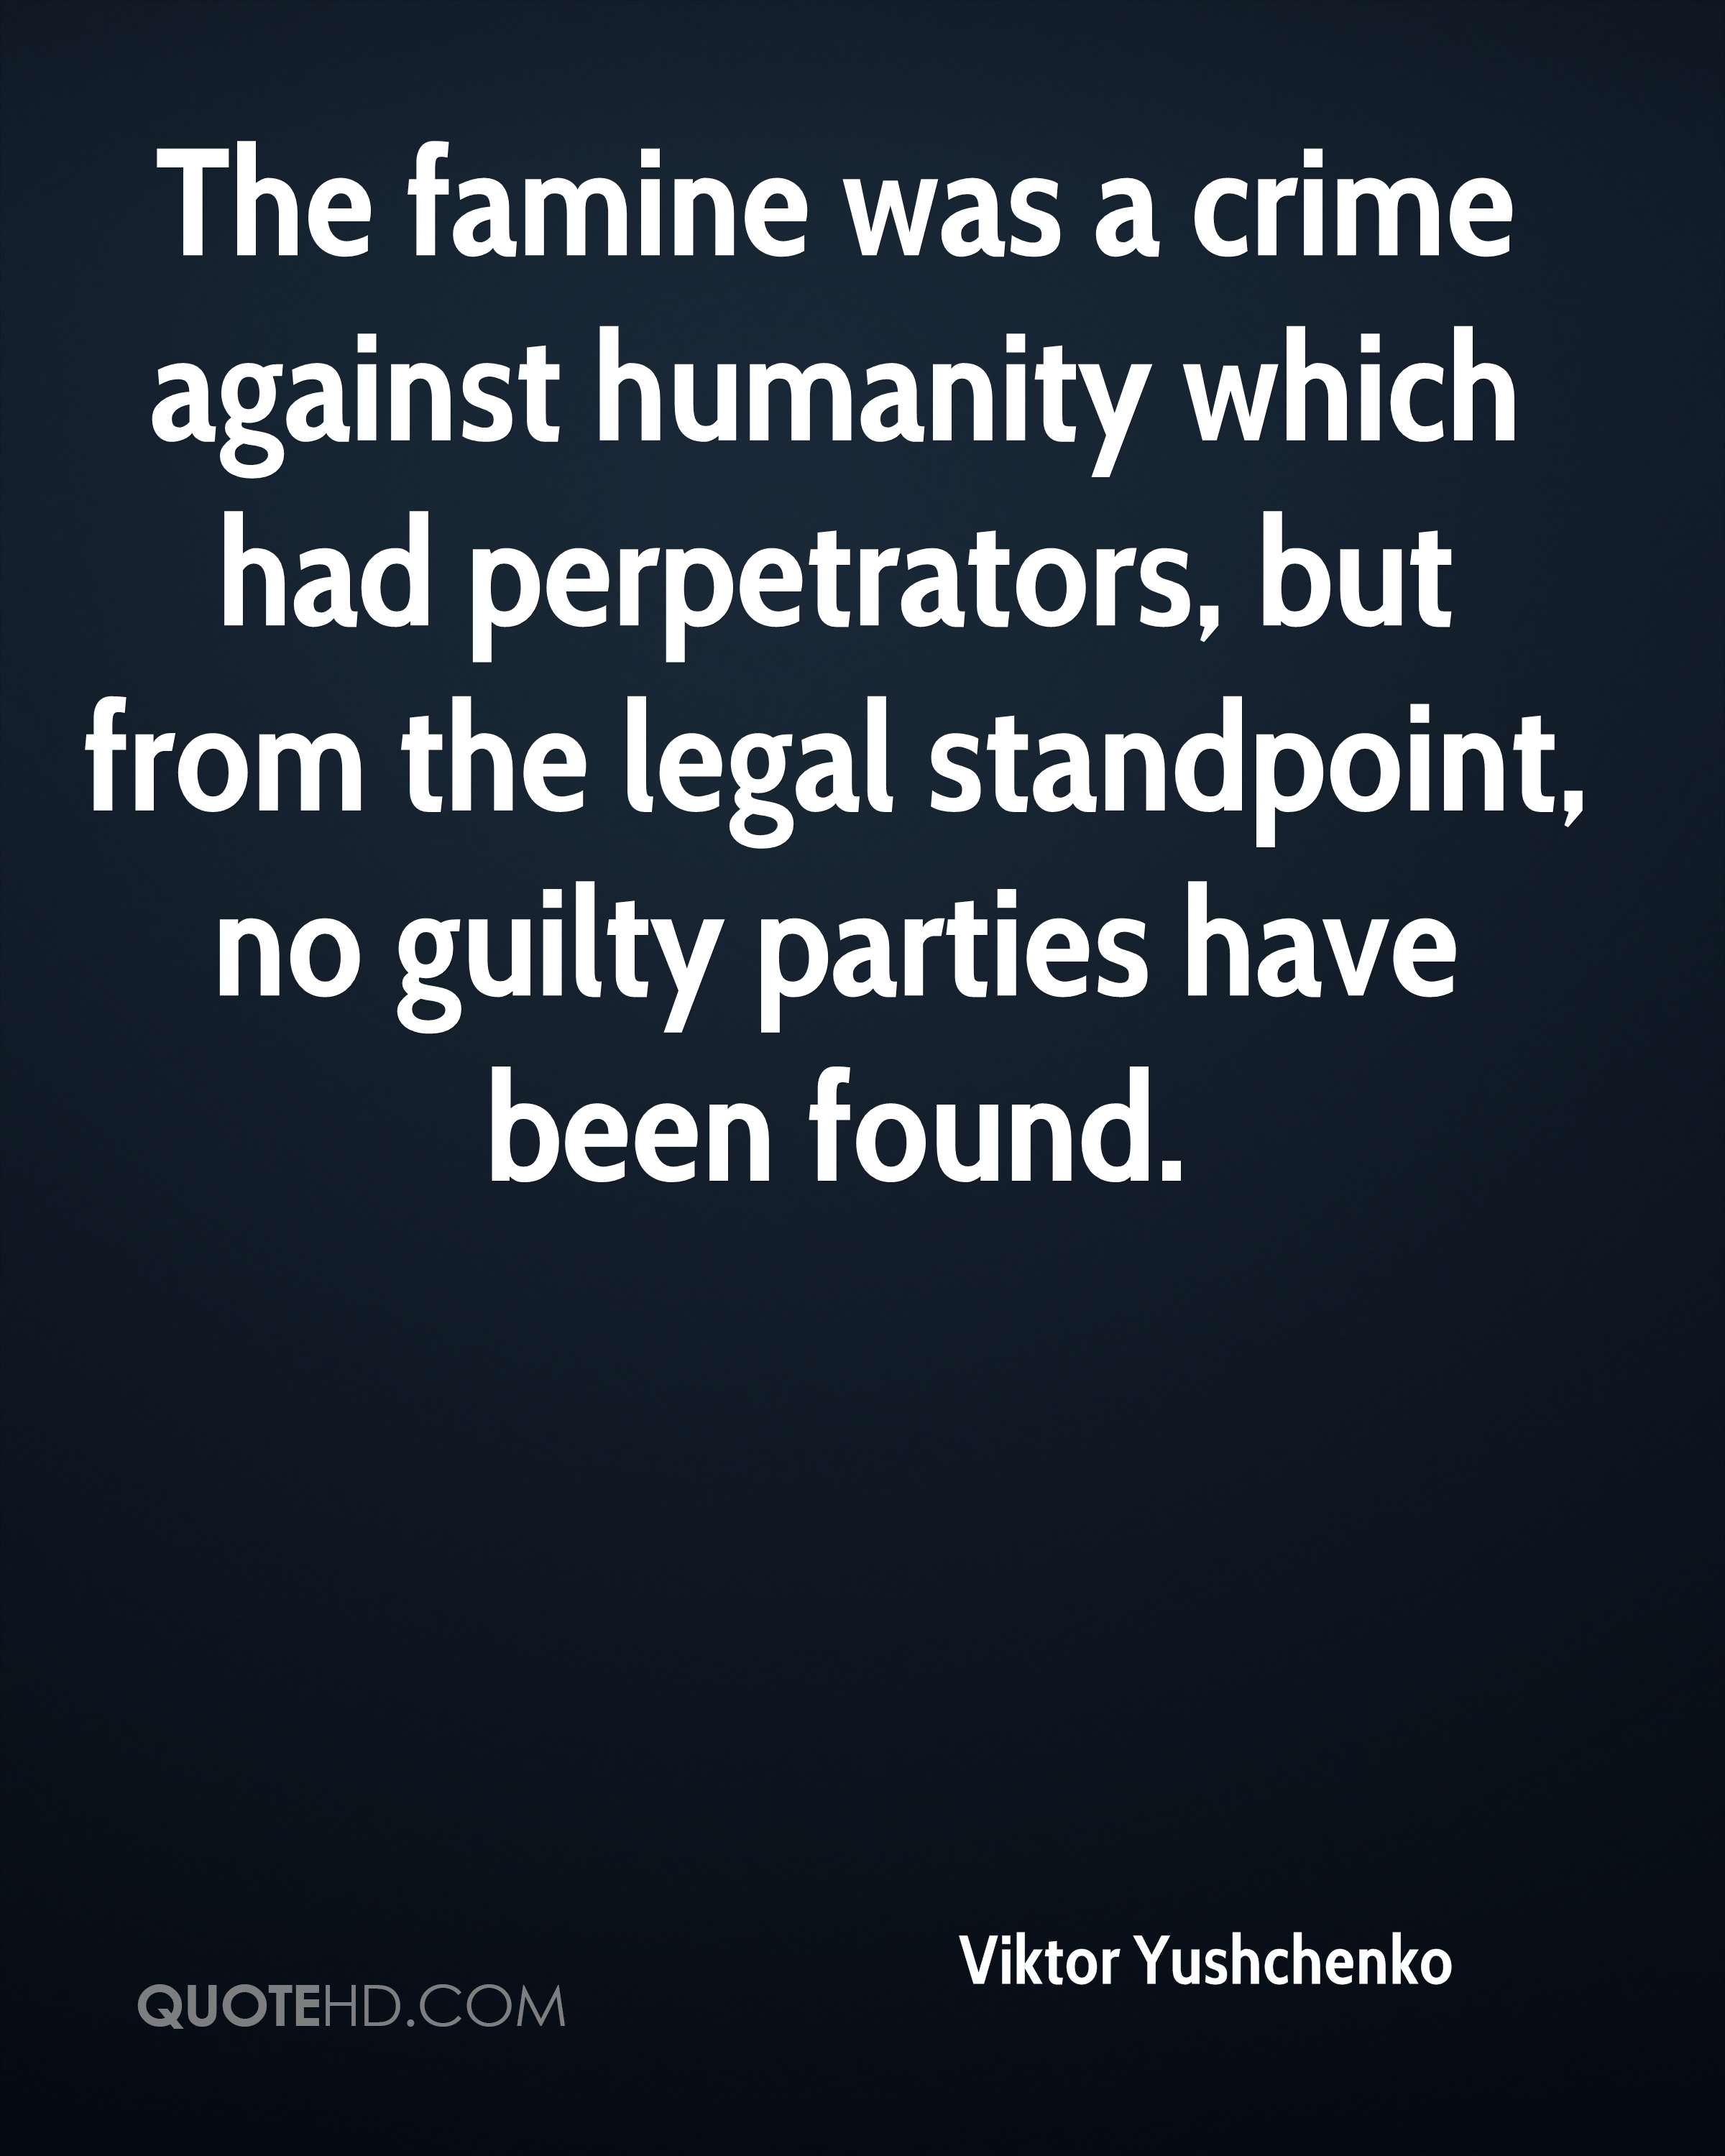 The famine was a crime against humanity which had perpetrators, but from the legal standpoint, no guilty parties have been found.